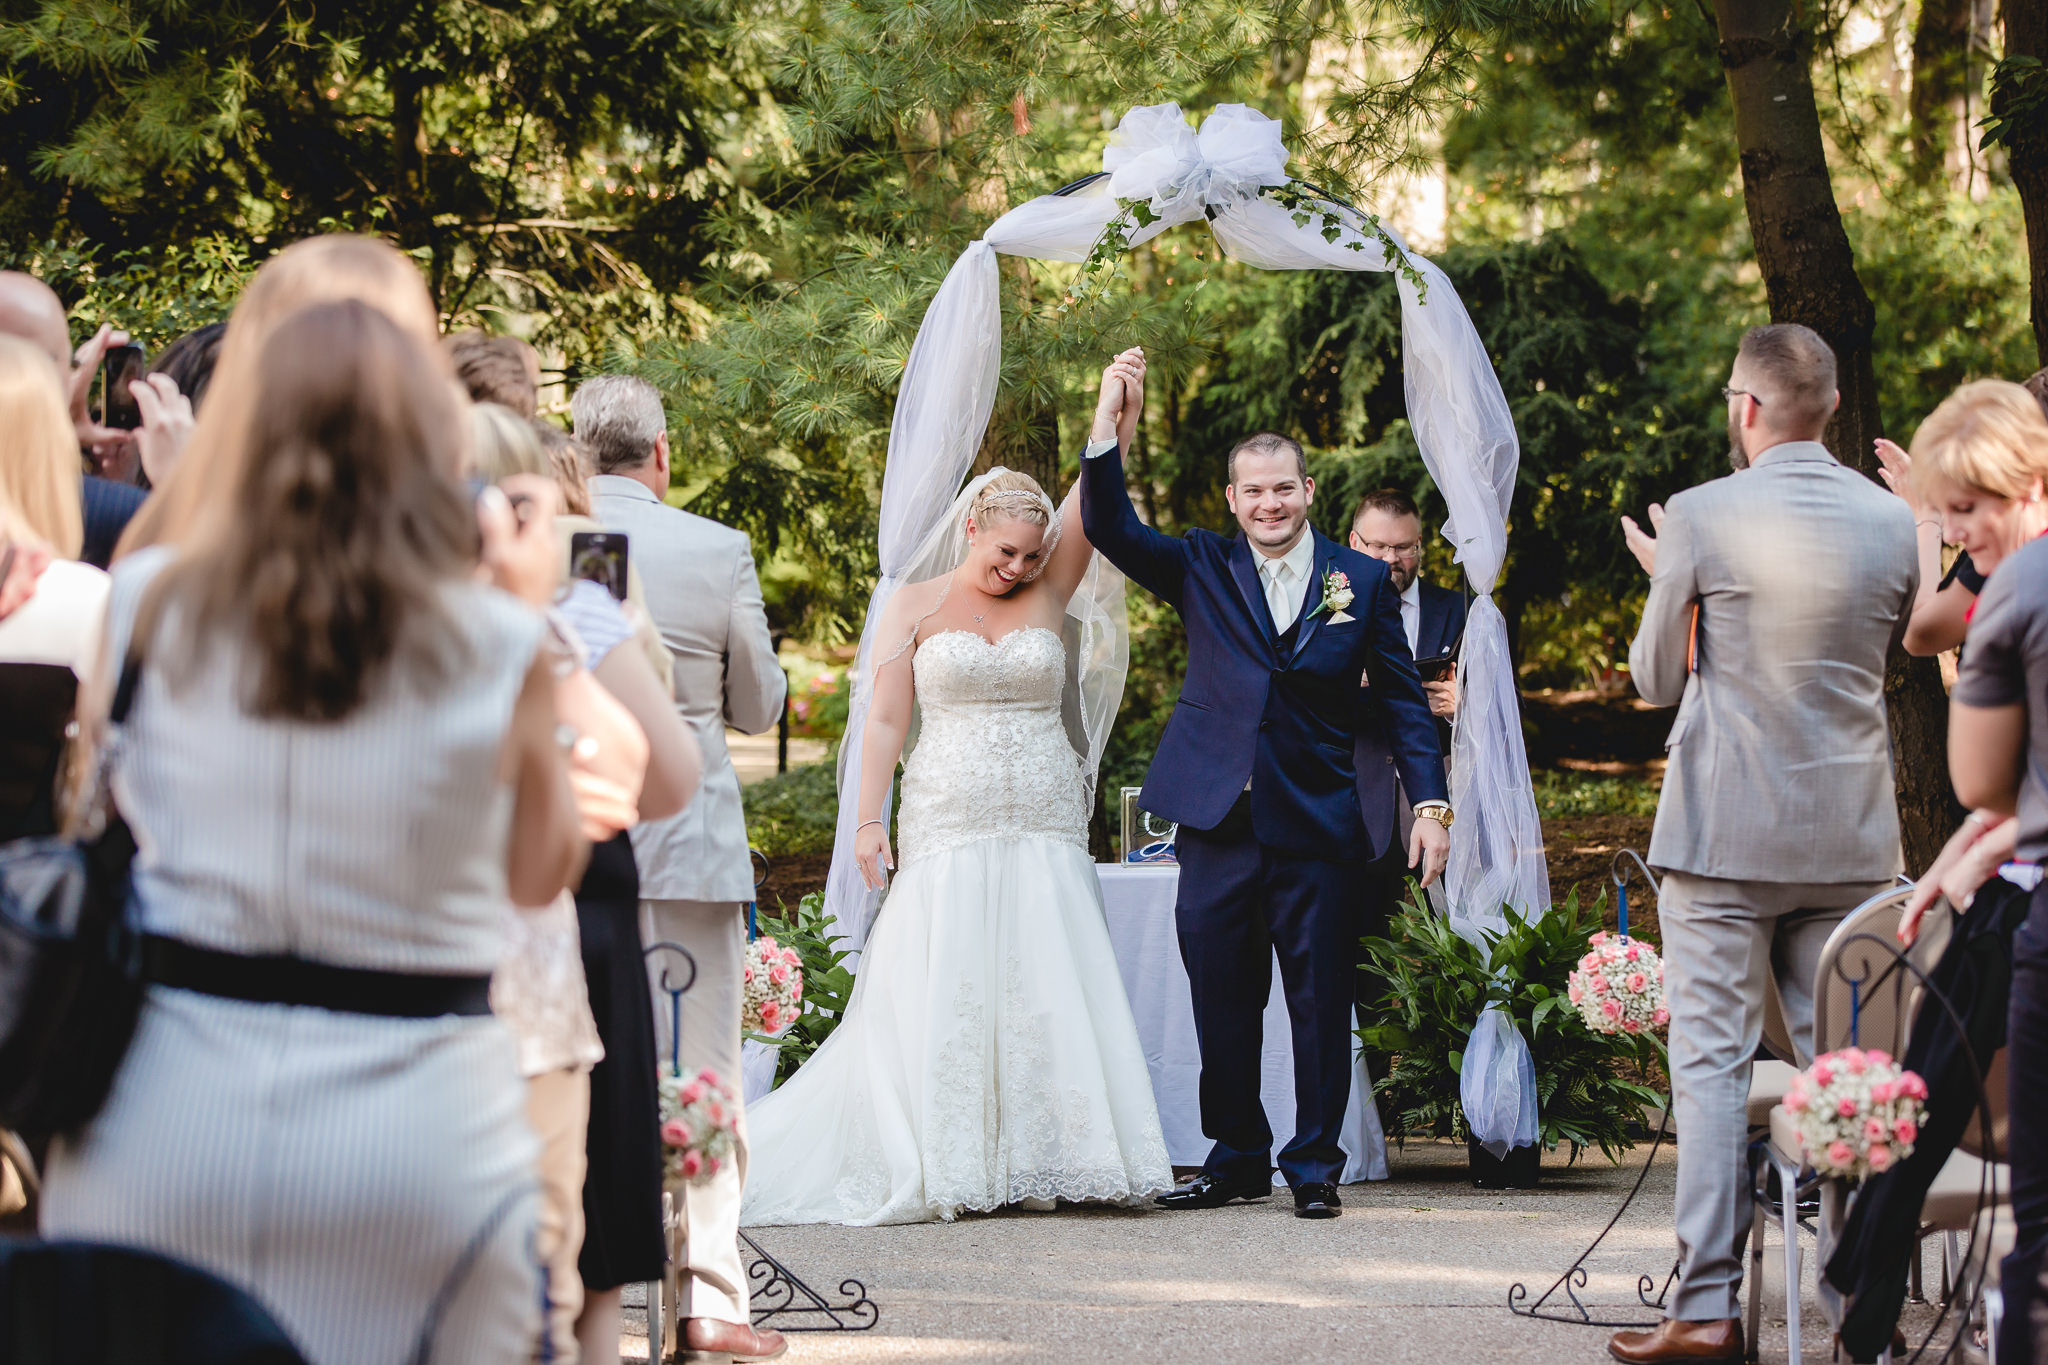 Bride and groom celebrate as they're announced as husband and wife